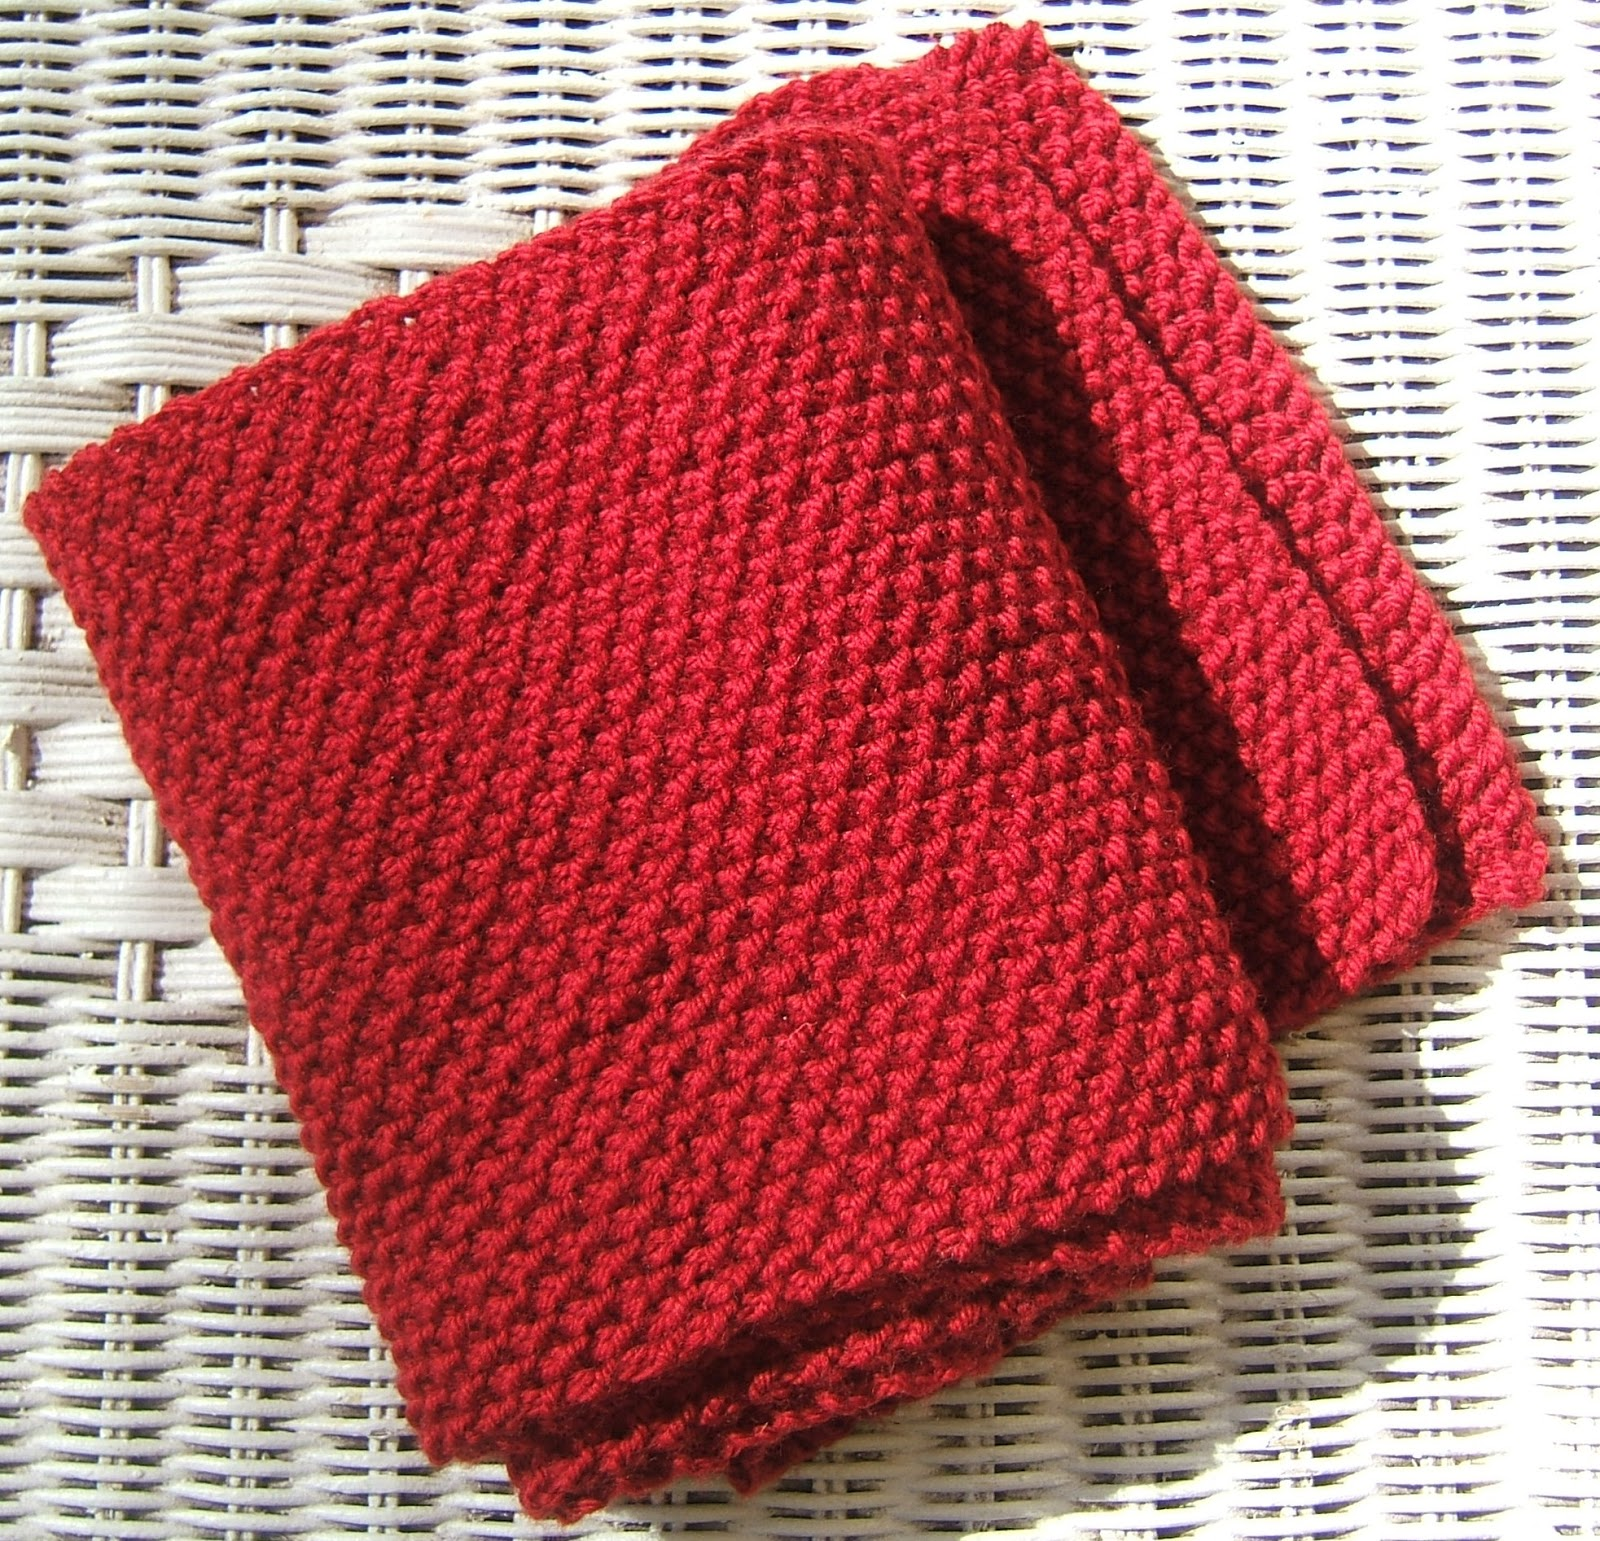 Knitting Moss Stitch How To : aussie knitting threads: Moss Stitch Scarf - Beginners